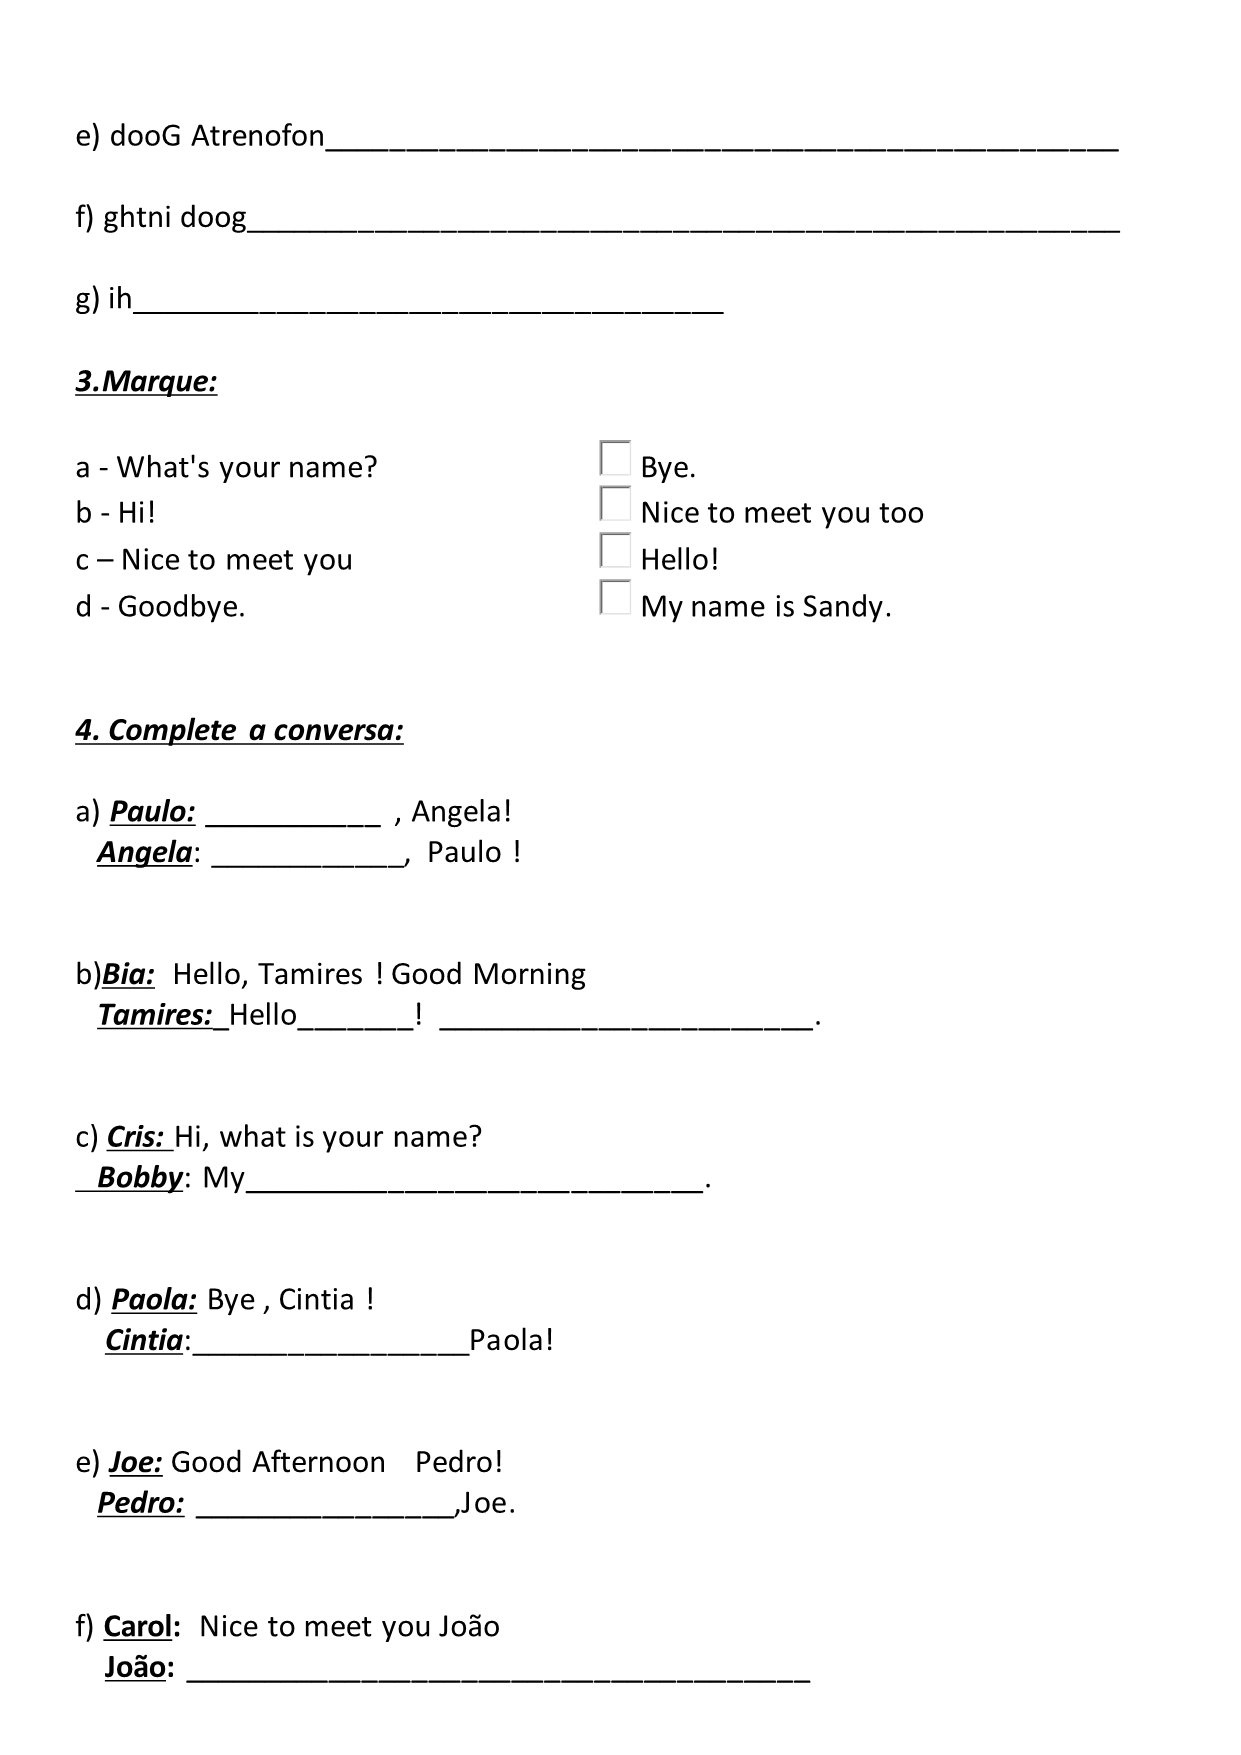 page_000005